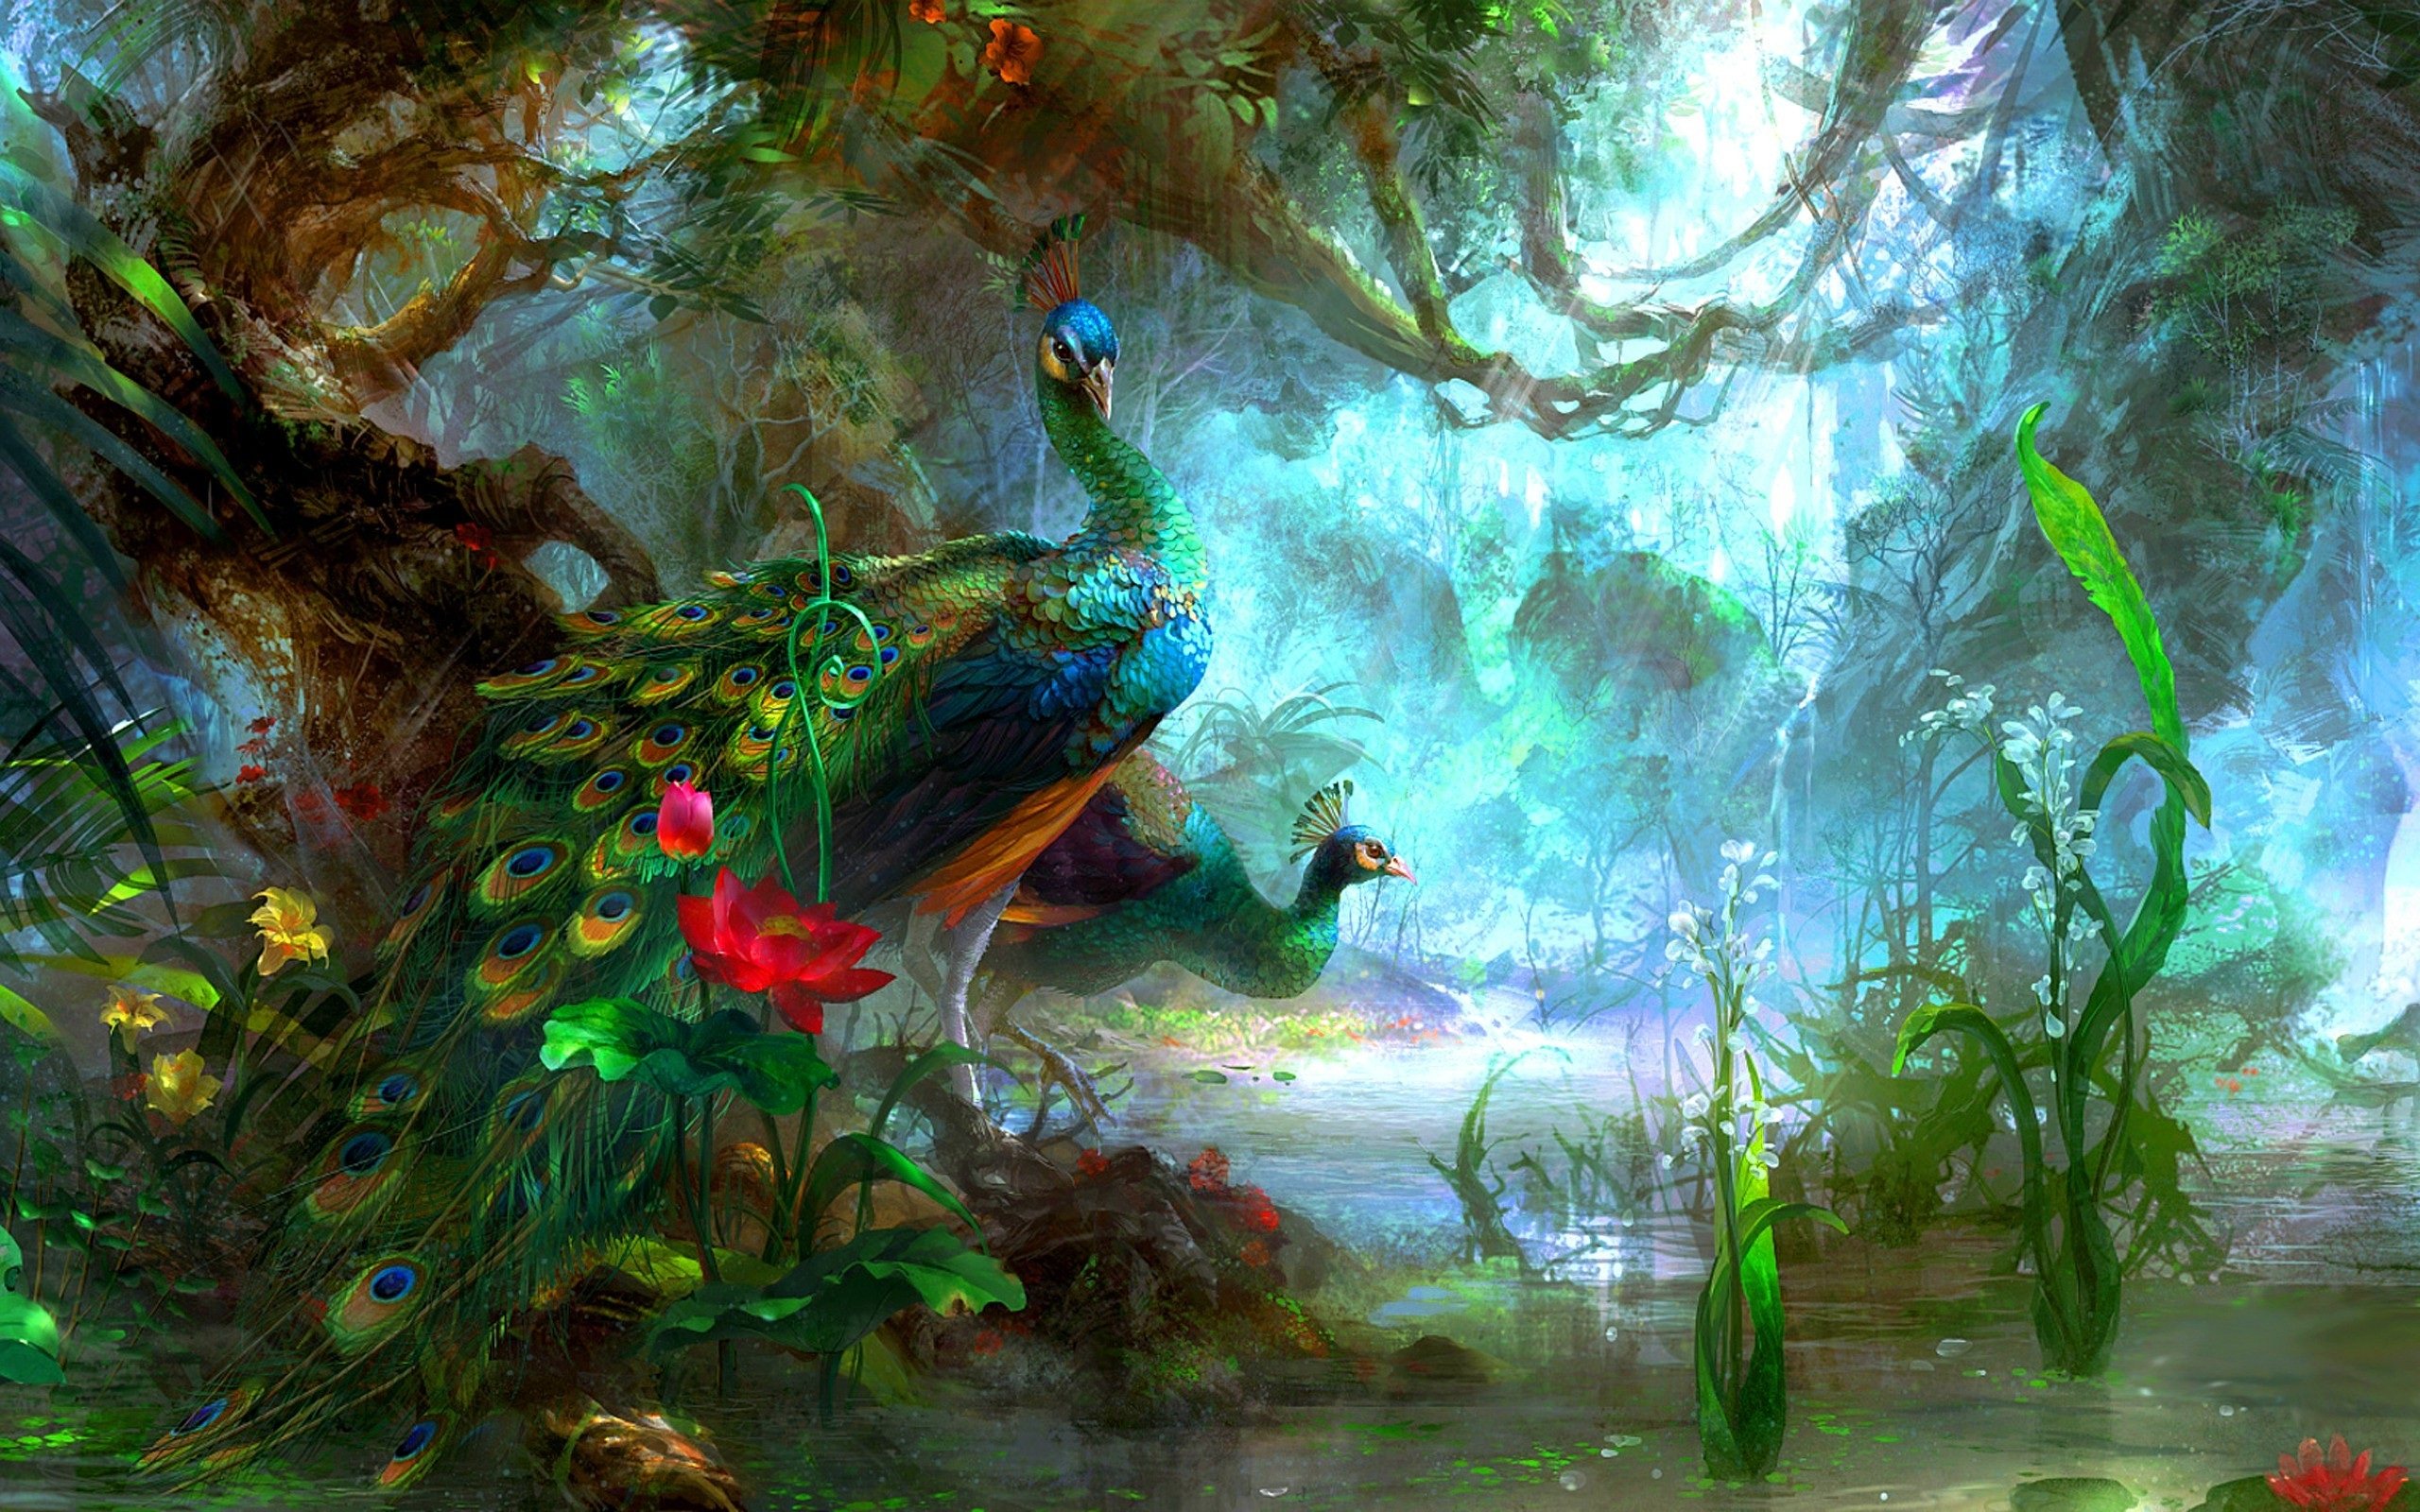 jungle-bird-wallpaper-lovely-wallpaper-forest-birds-fantasy-art-peacocks-jungle-vines-of-jungle-bird-wallpaper.jpg